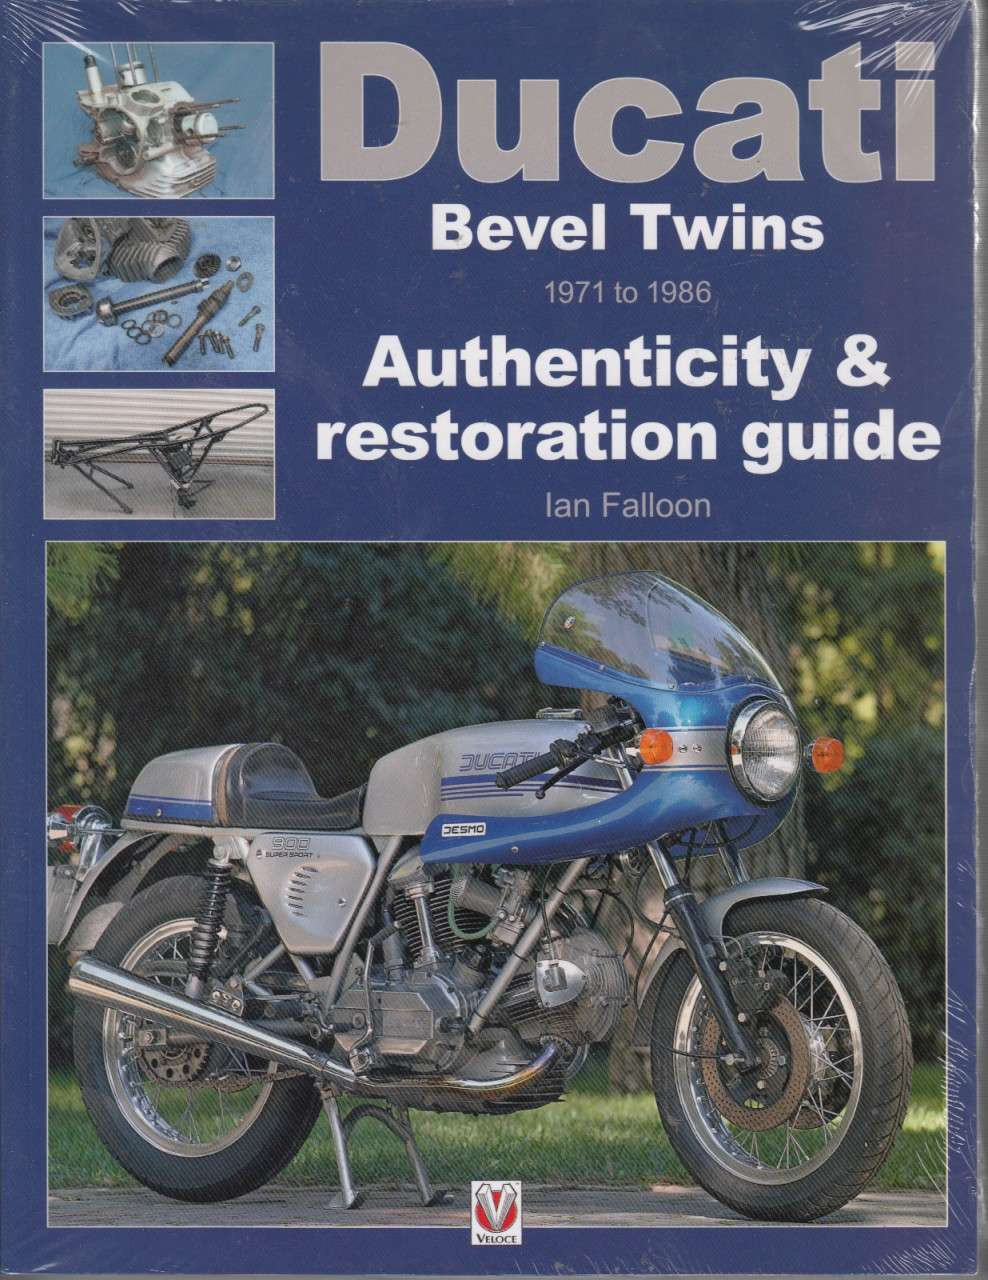 Ducati Bevel Twins 1971 To 1986 Authenticity Restoration Guide 250 Scrambler Wiring Diagram